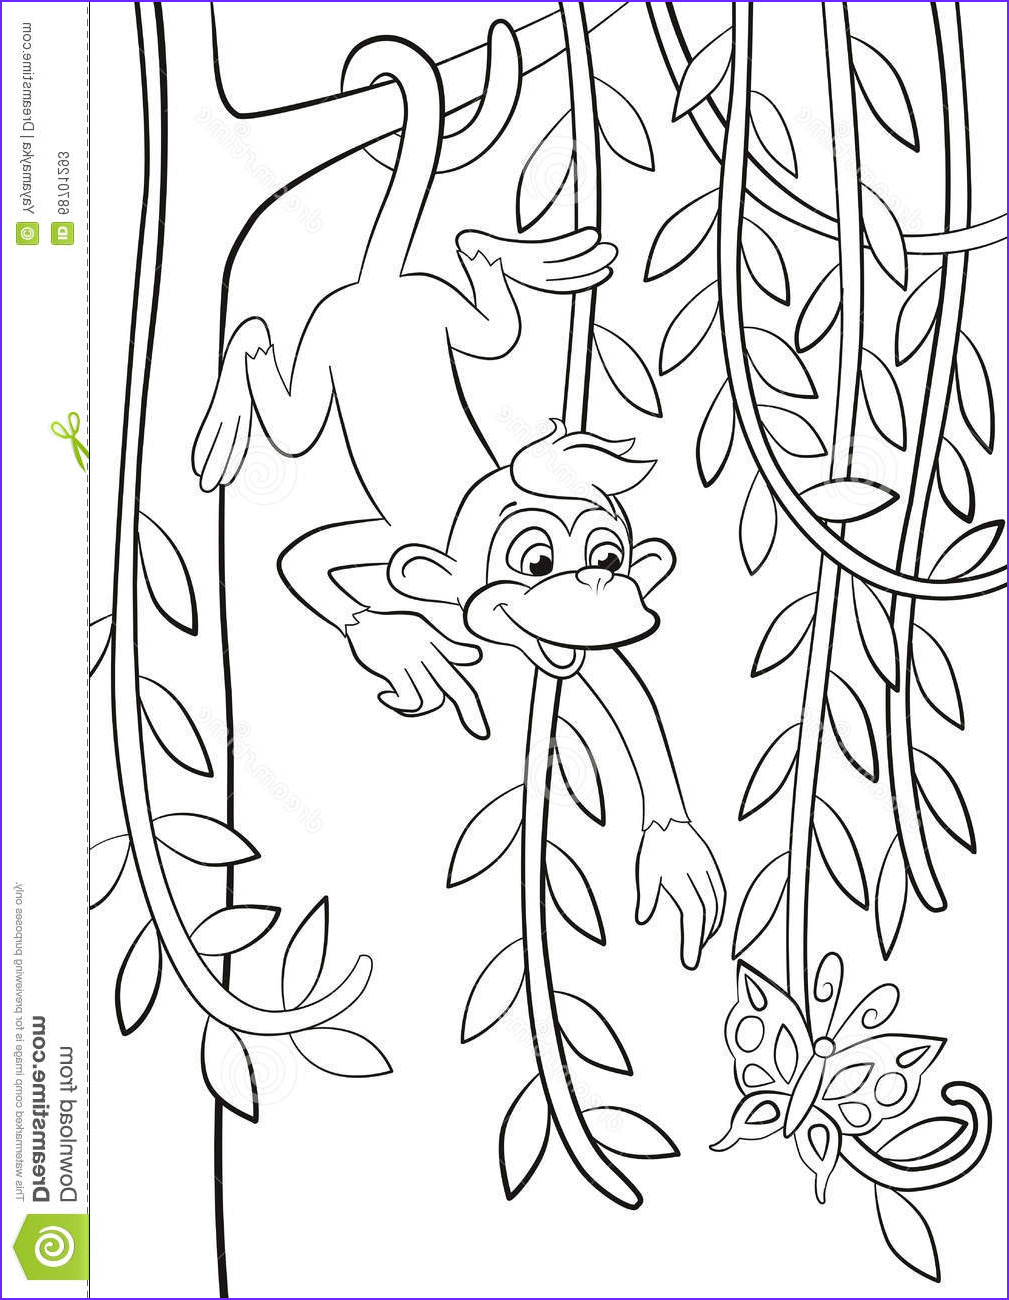 Girl Monkey Coloring Page Luxury Photography Awesome Coloring Pages Monkeys In Trees